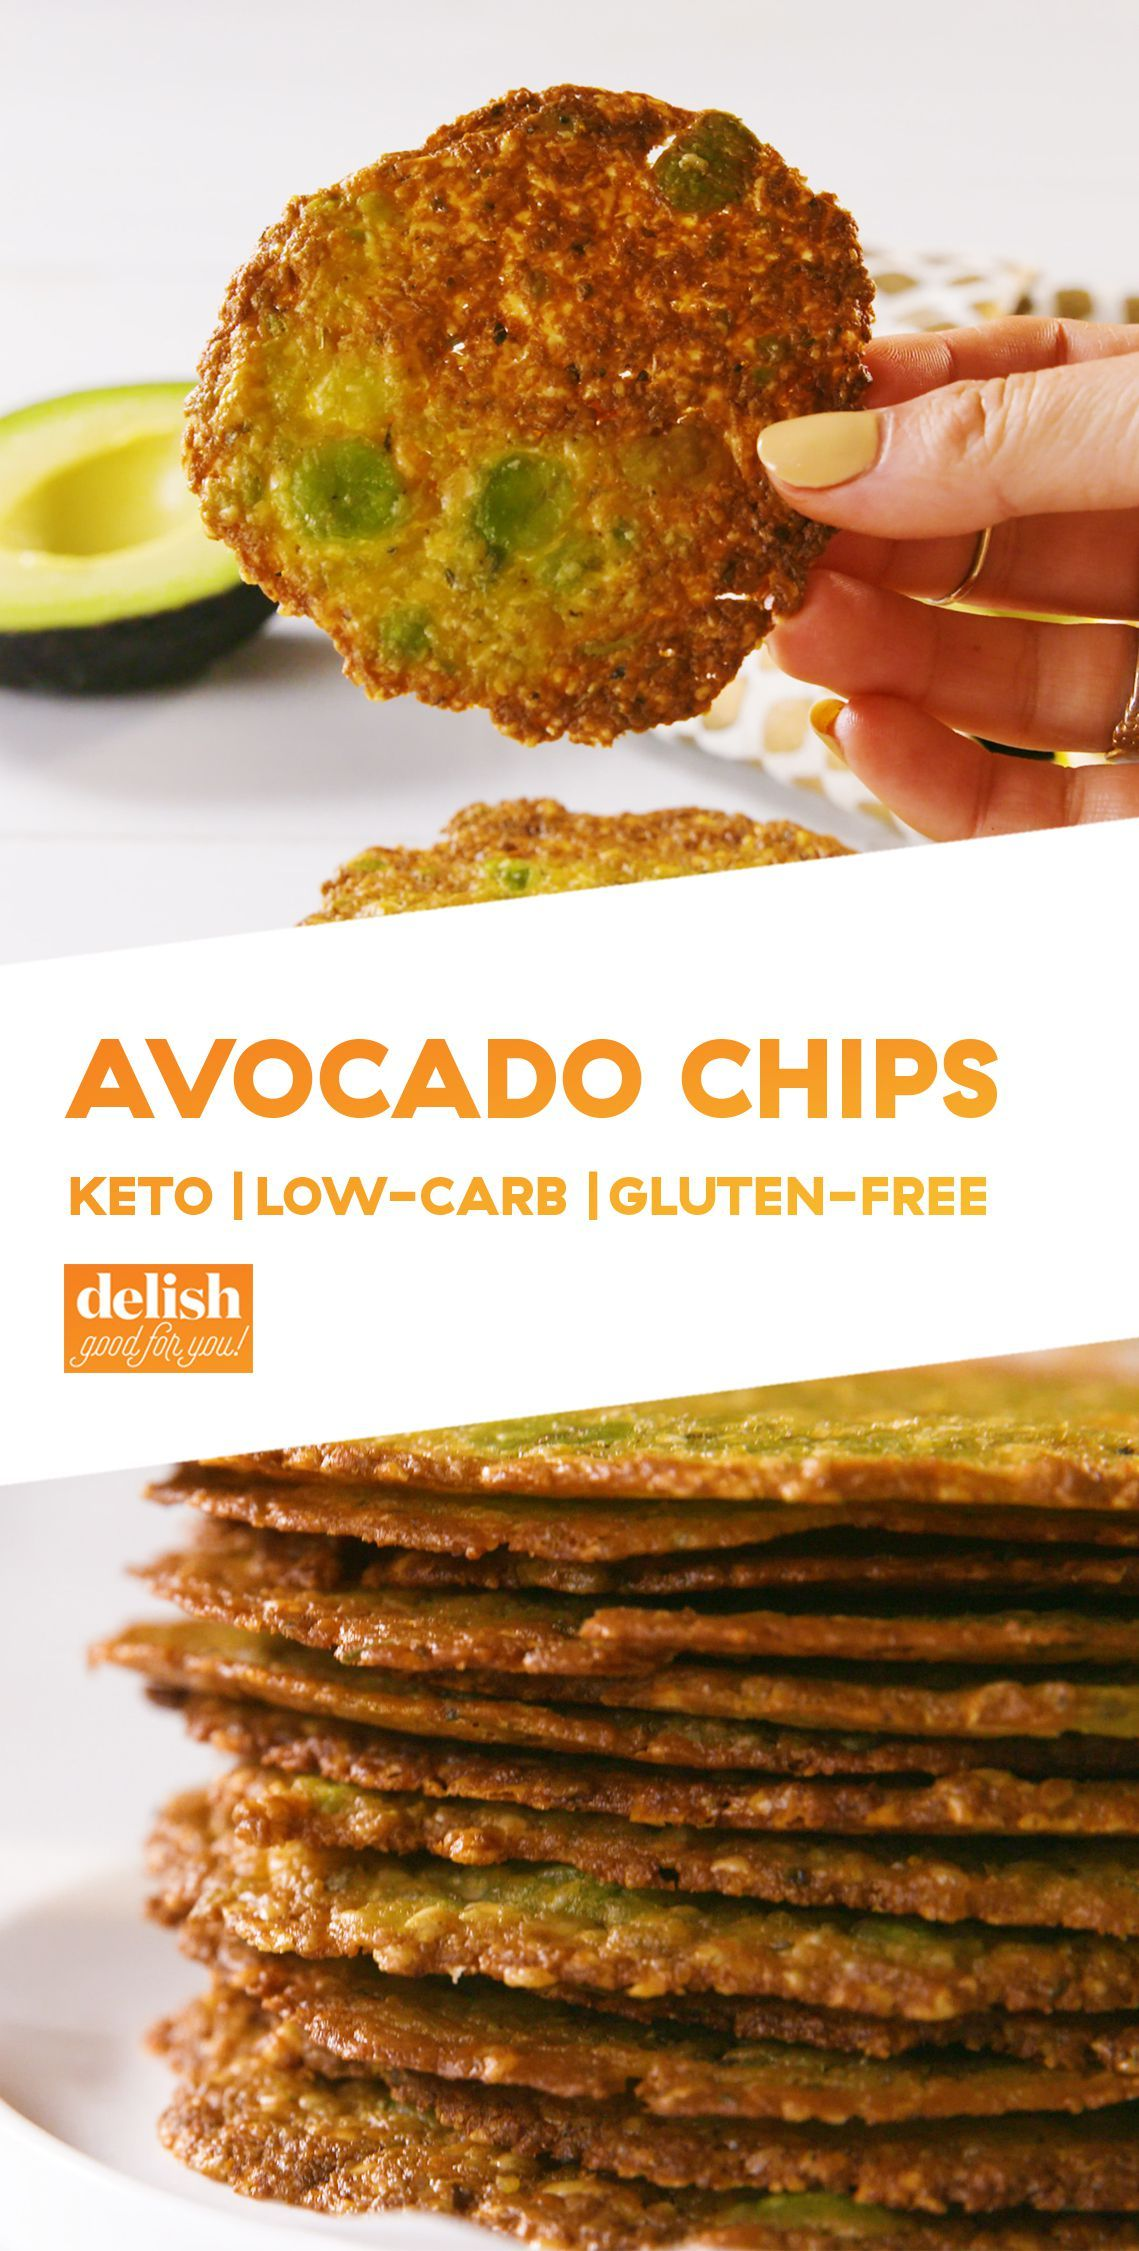 Avocado Chips Taste Better Than Potato Chips And Are Going Completely Viral